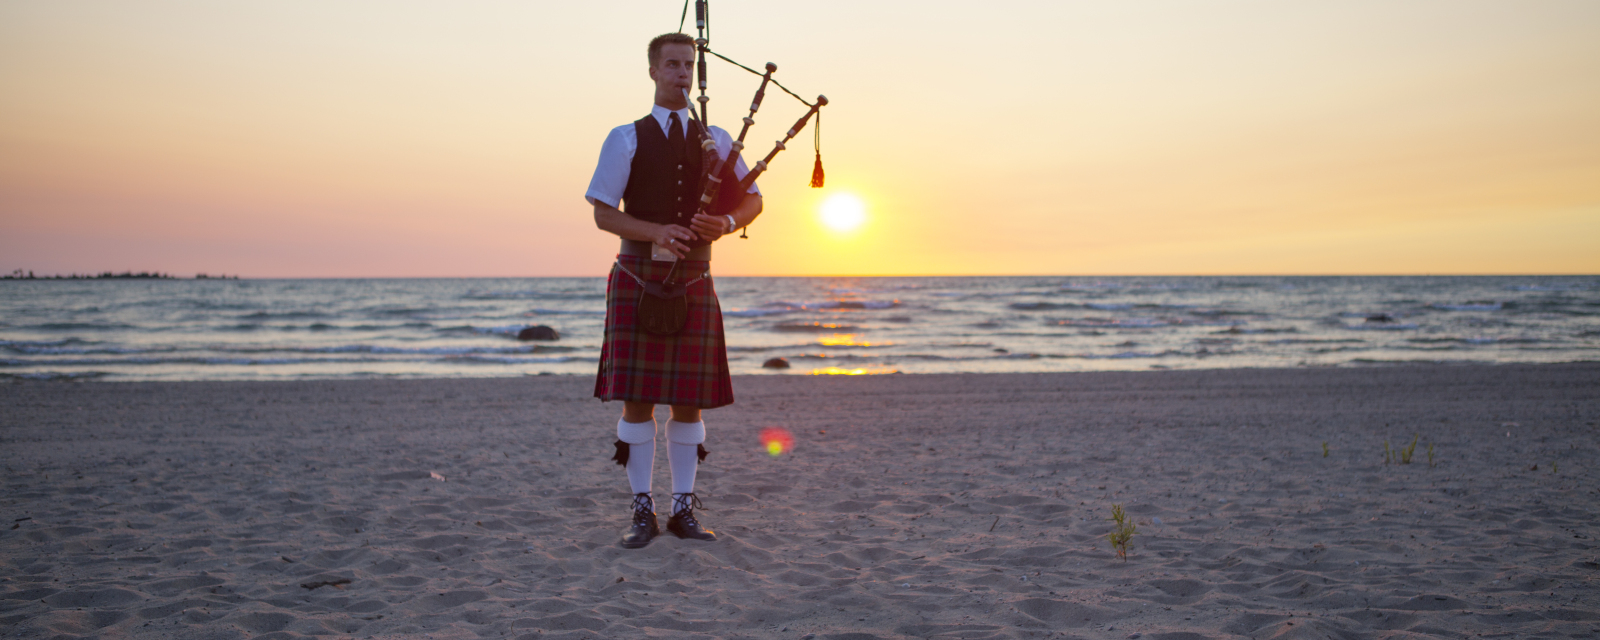 Kincardine Scottish Bagpipe Parade